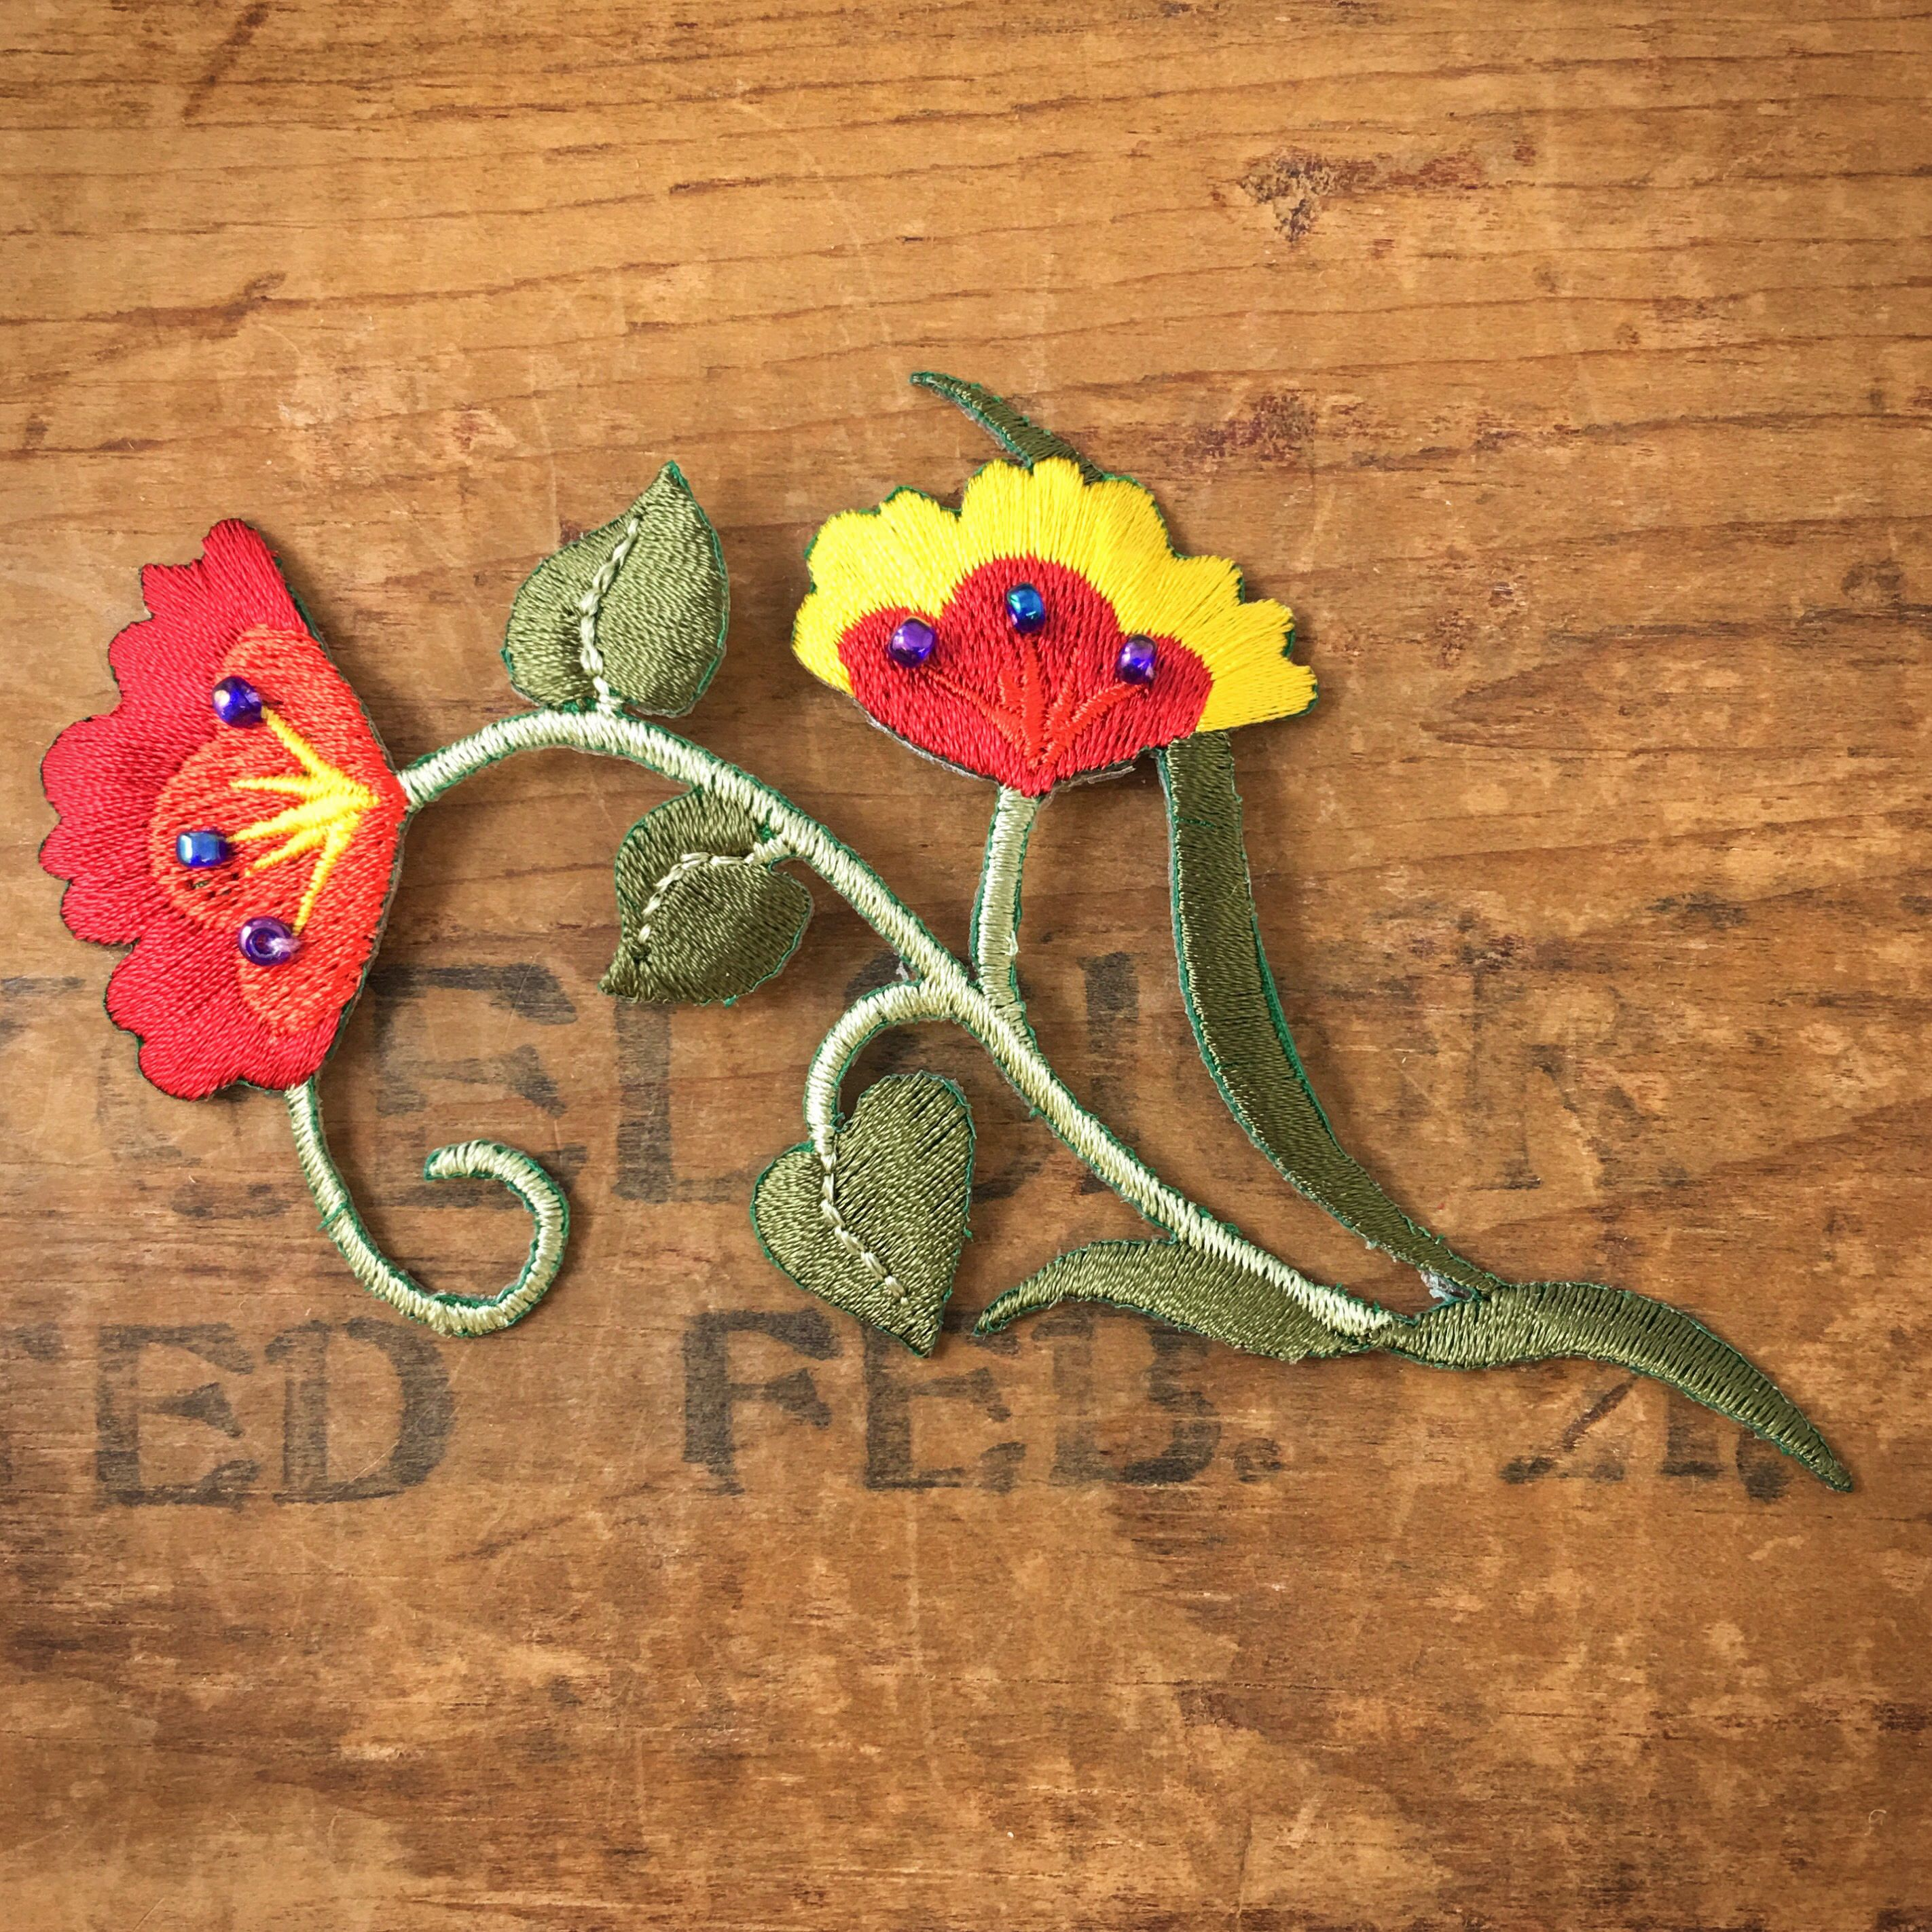 Embroidered Floral Vine Iron Appliqu With Red And Yellow Flowers